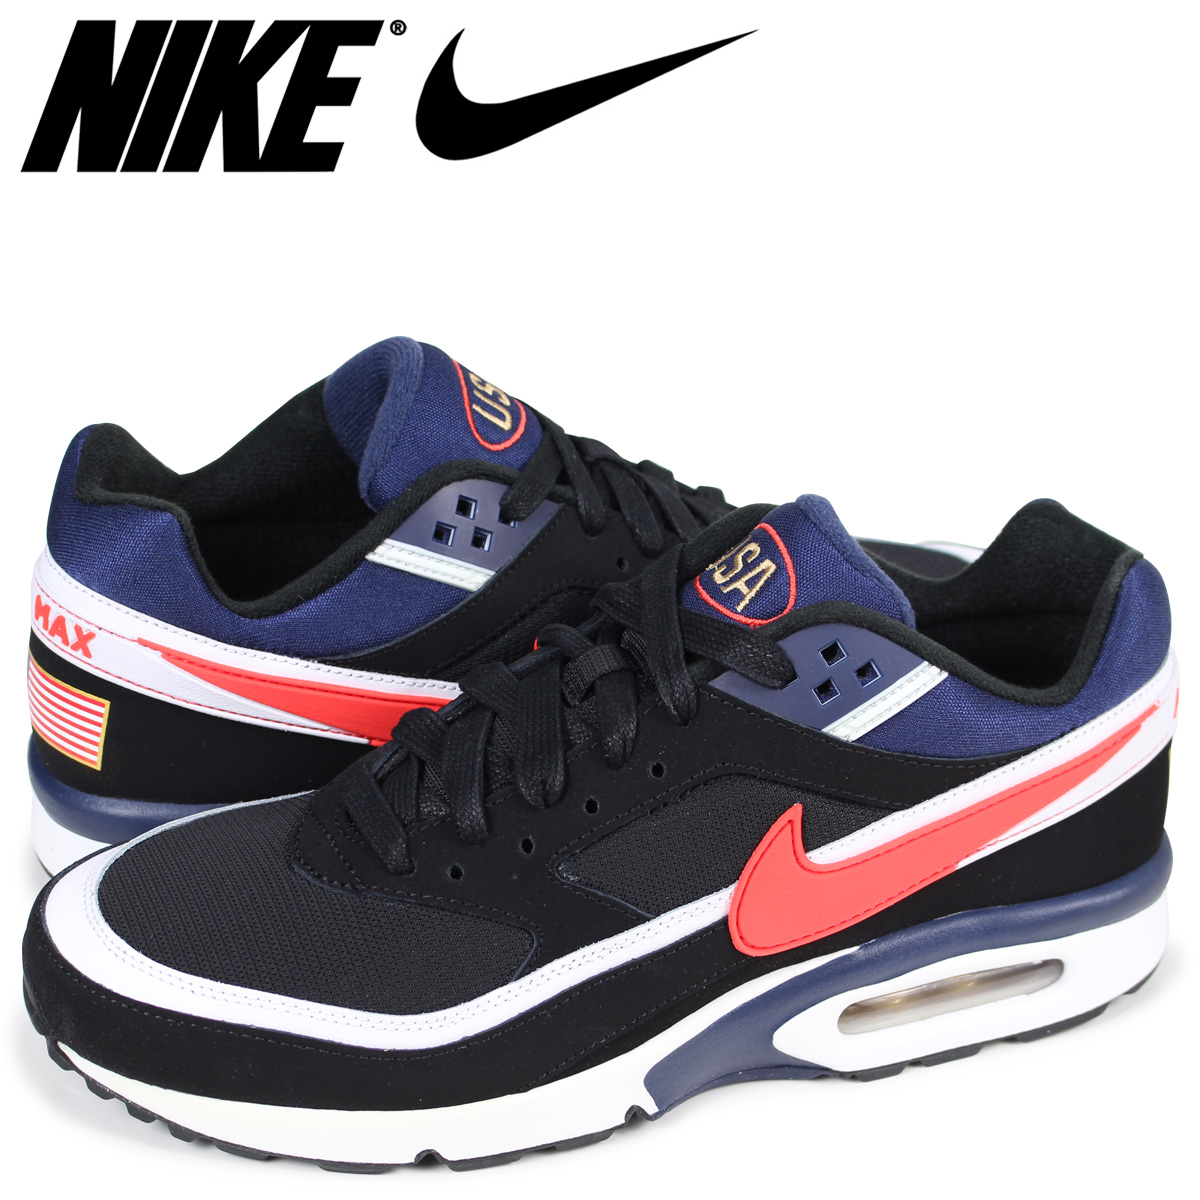 Nike NIKE Air Max BW sneakers men AIR MAX PREMIUM USA 819,523-064 navy